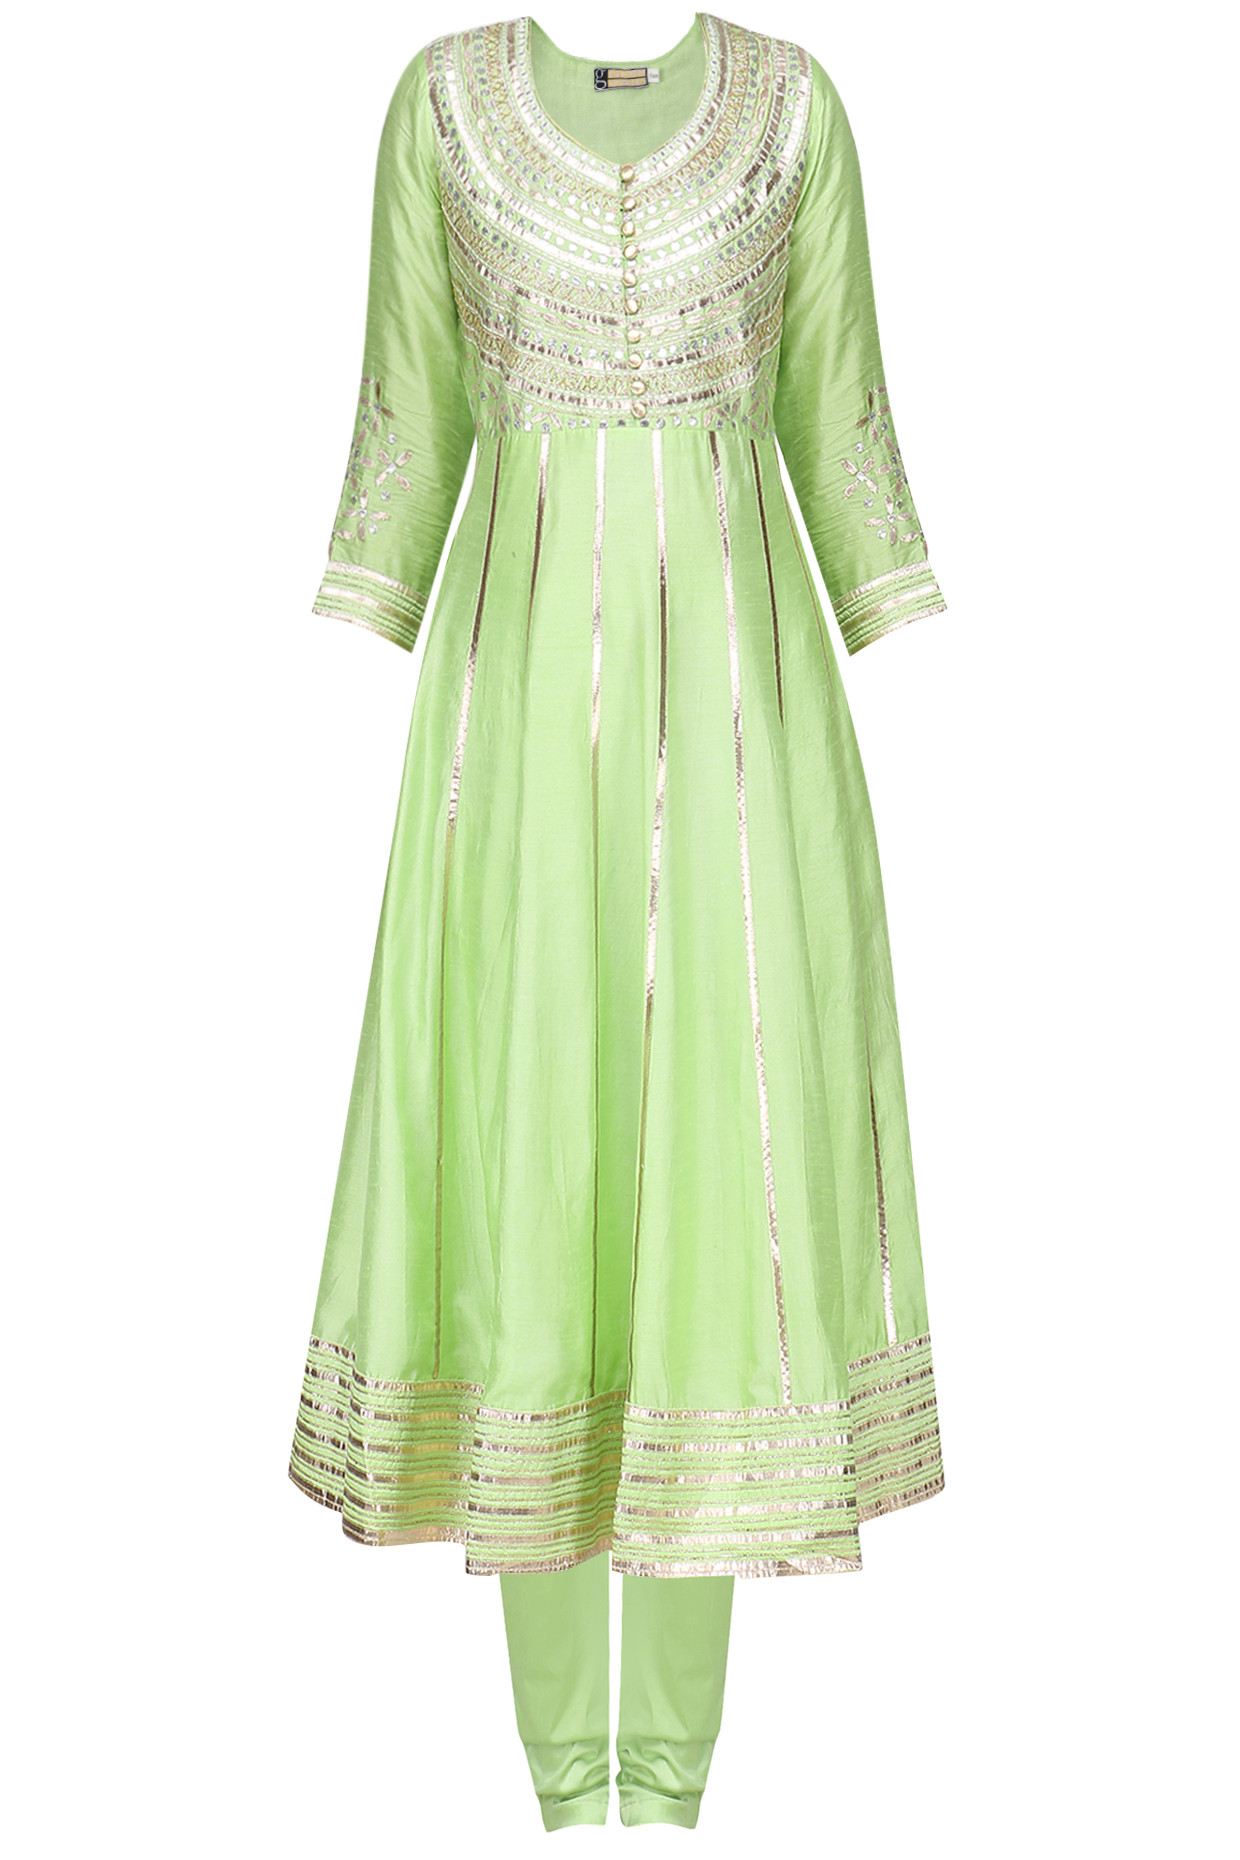 Green Embroidered Angarakha Kurta with Churidar Pants by Gopi Vaid